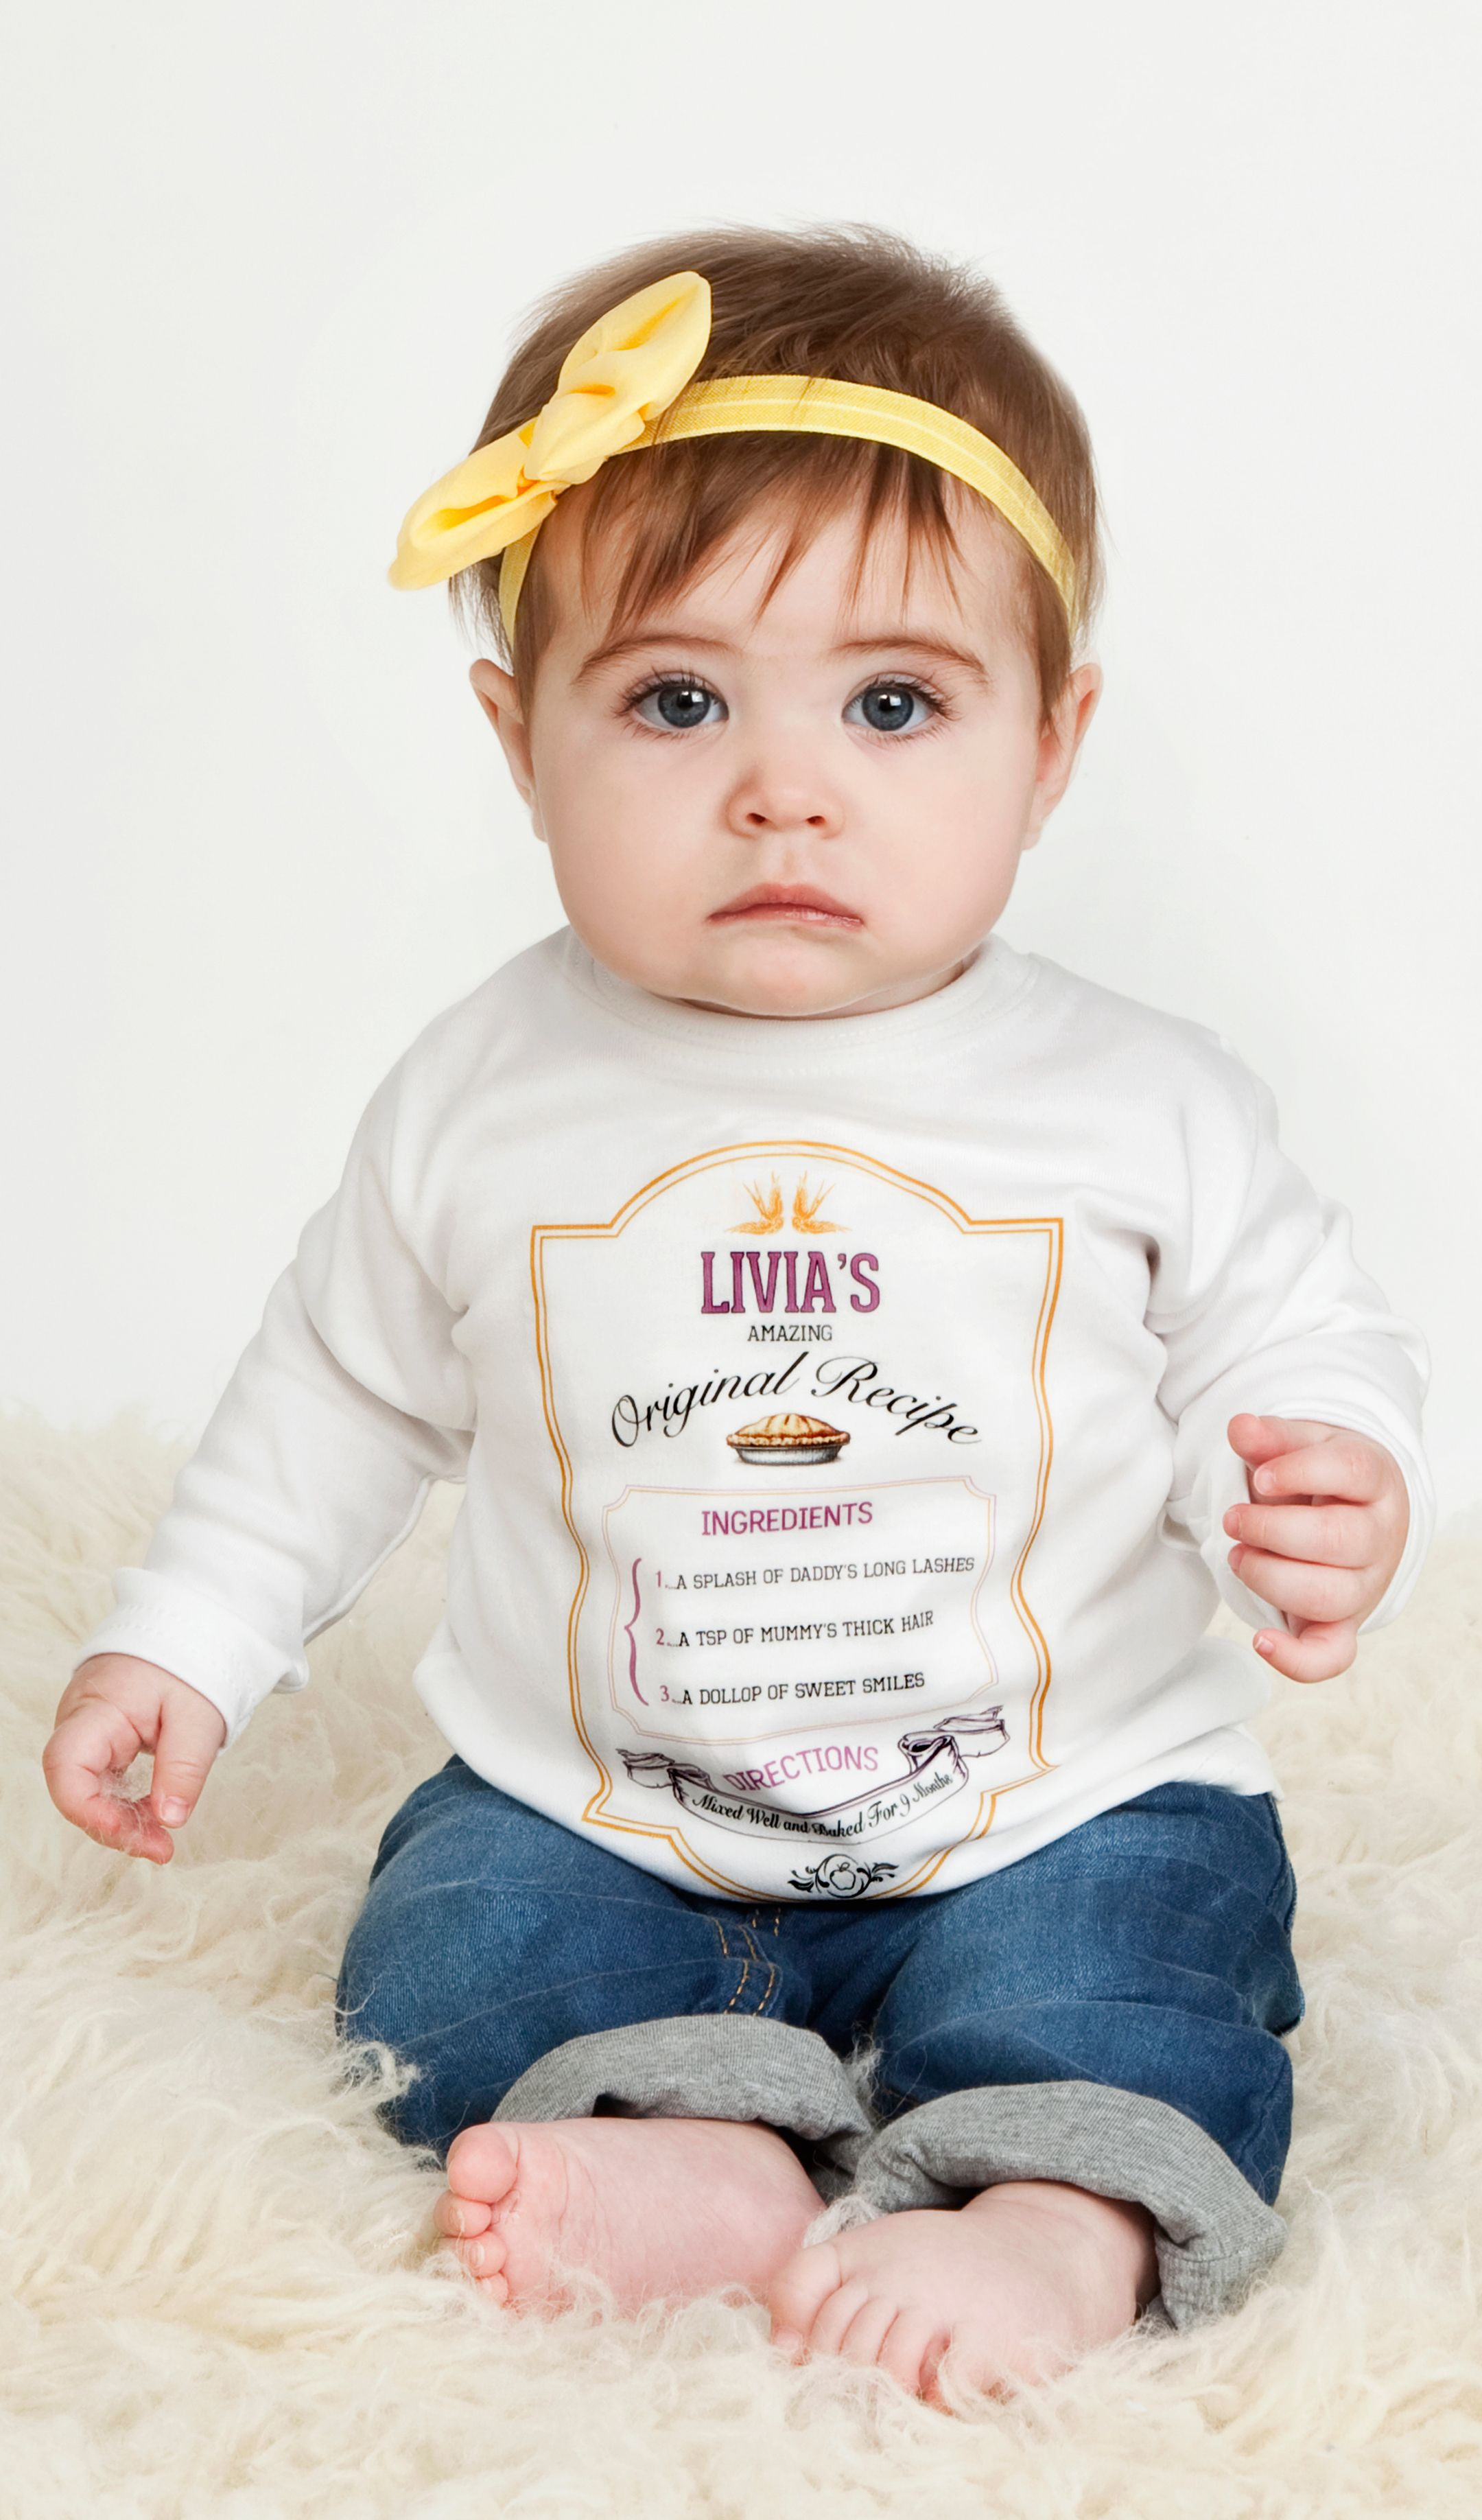 Baby boy hair long vintage design on tshirt  customised recipe for baby  harlius